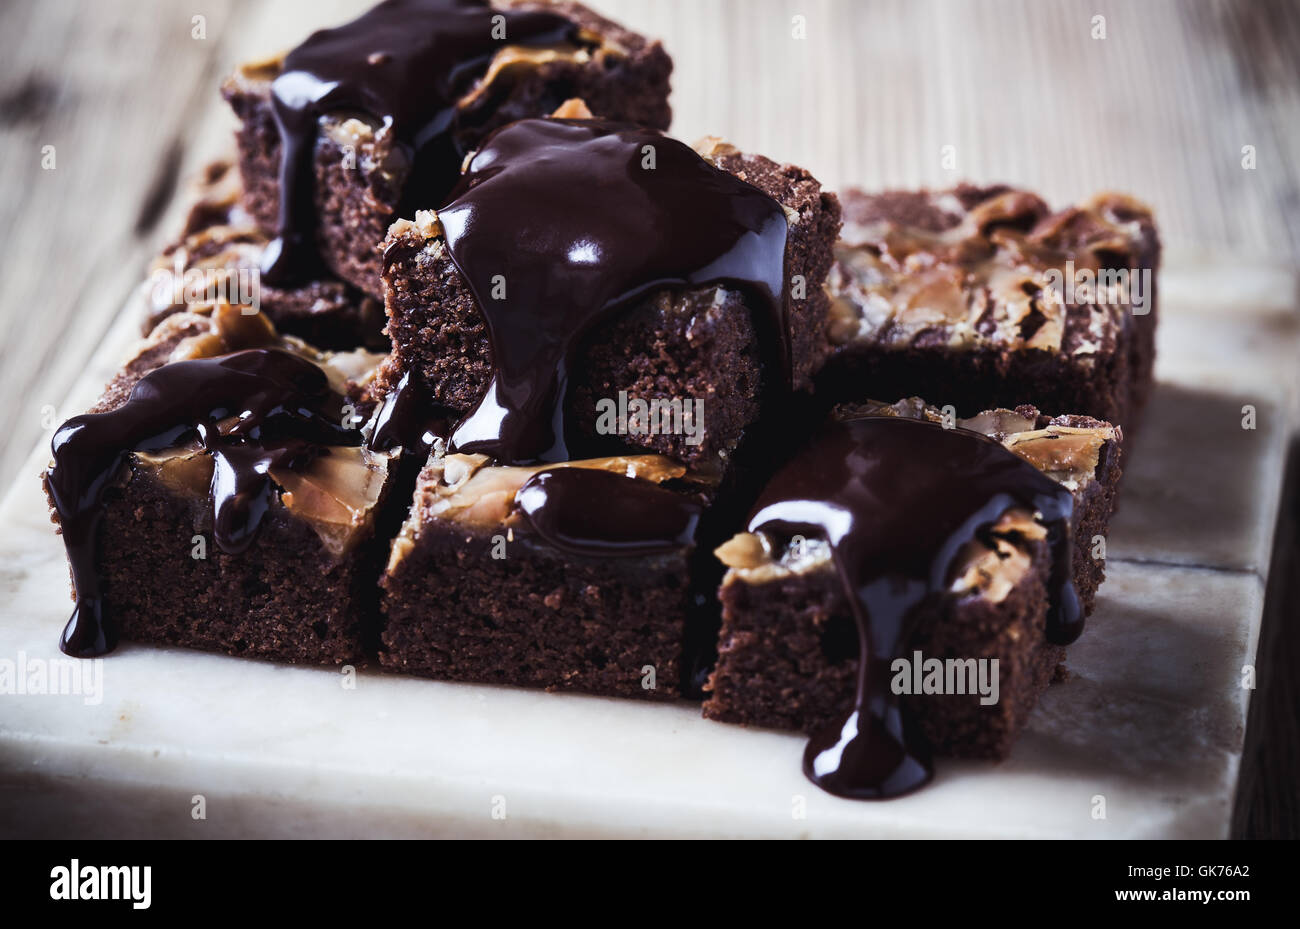 Homemade caramel chocolate brownies with dark chocolate ganache served on marble stand - Stock Image